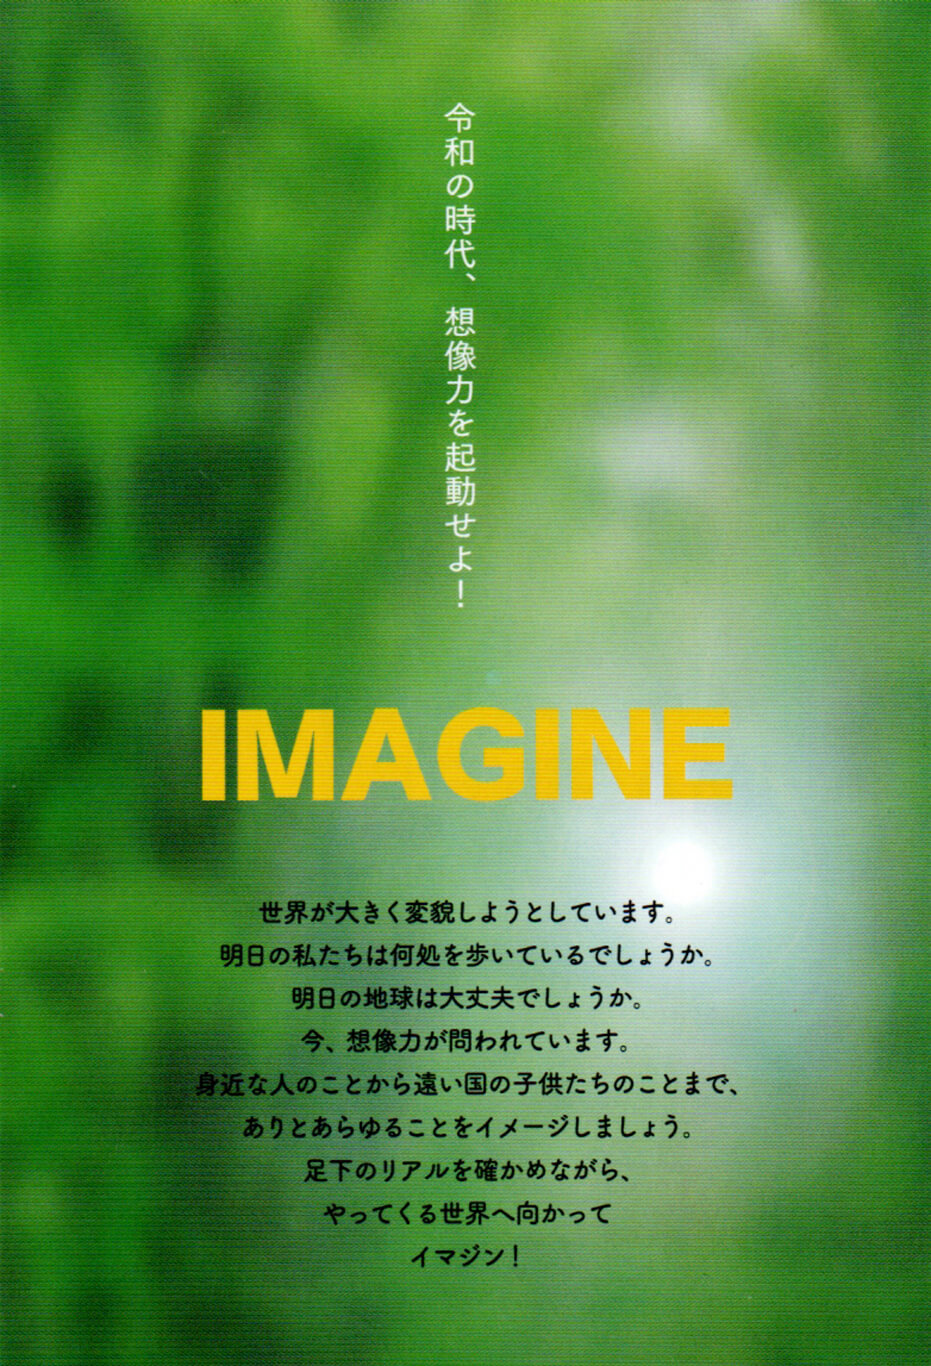 kaze-201907-IMAGINE展